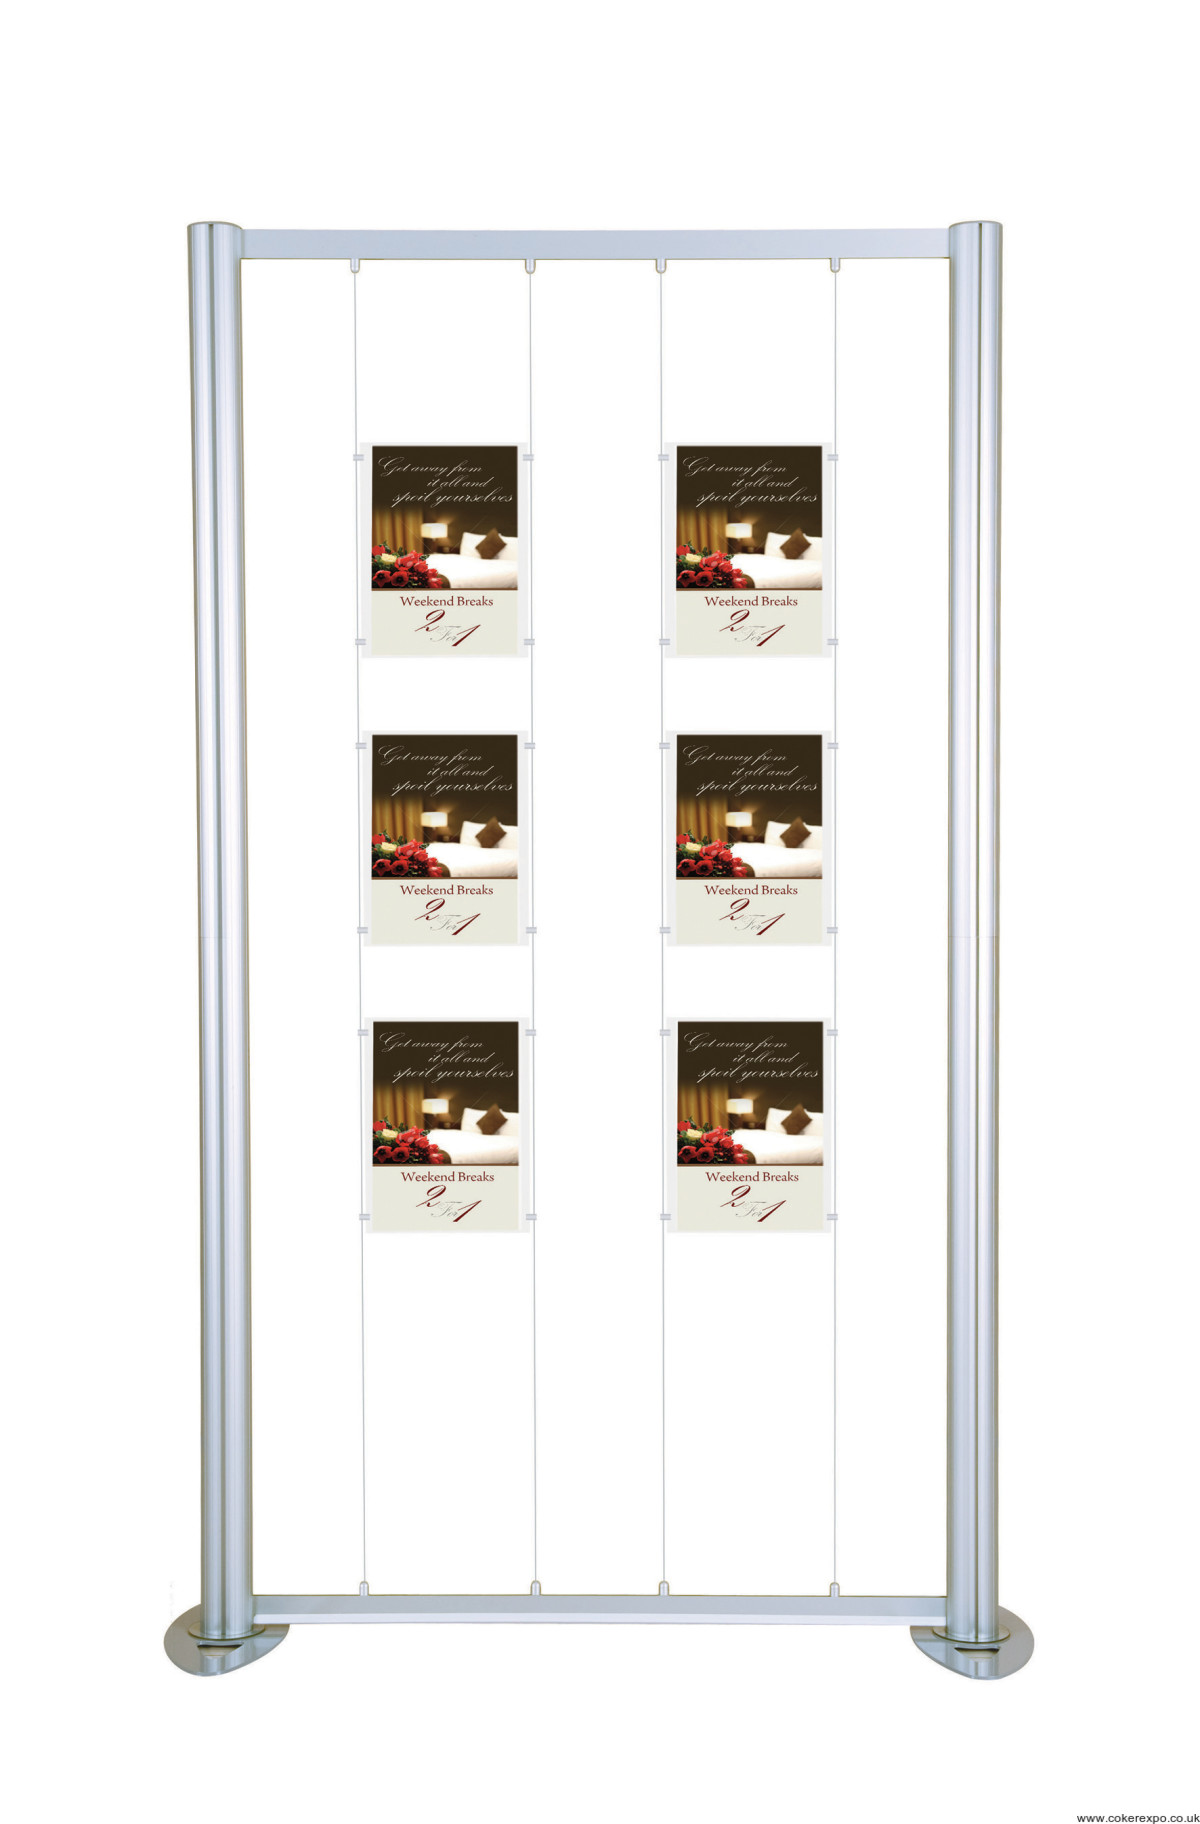 Cable Display Systems | Wire Display Kits – Coker Expo